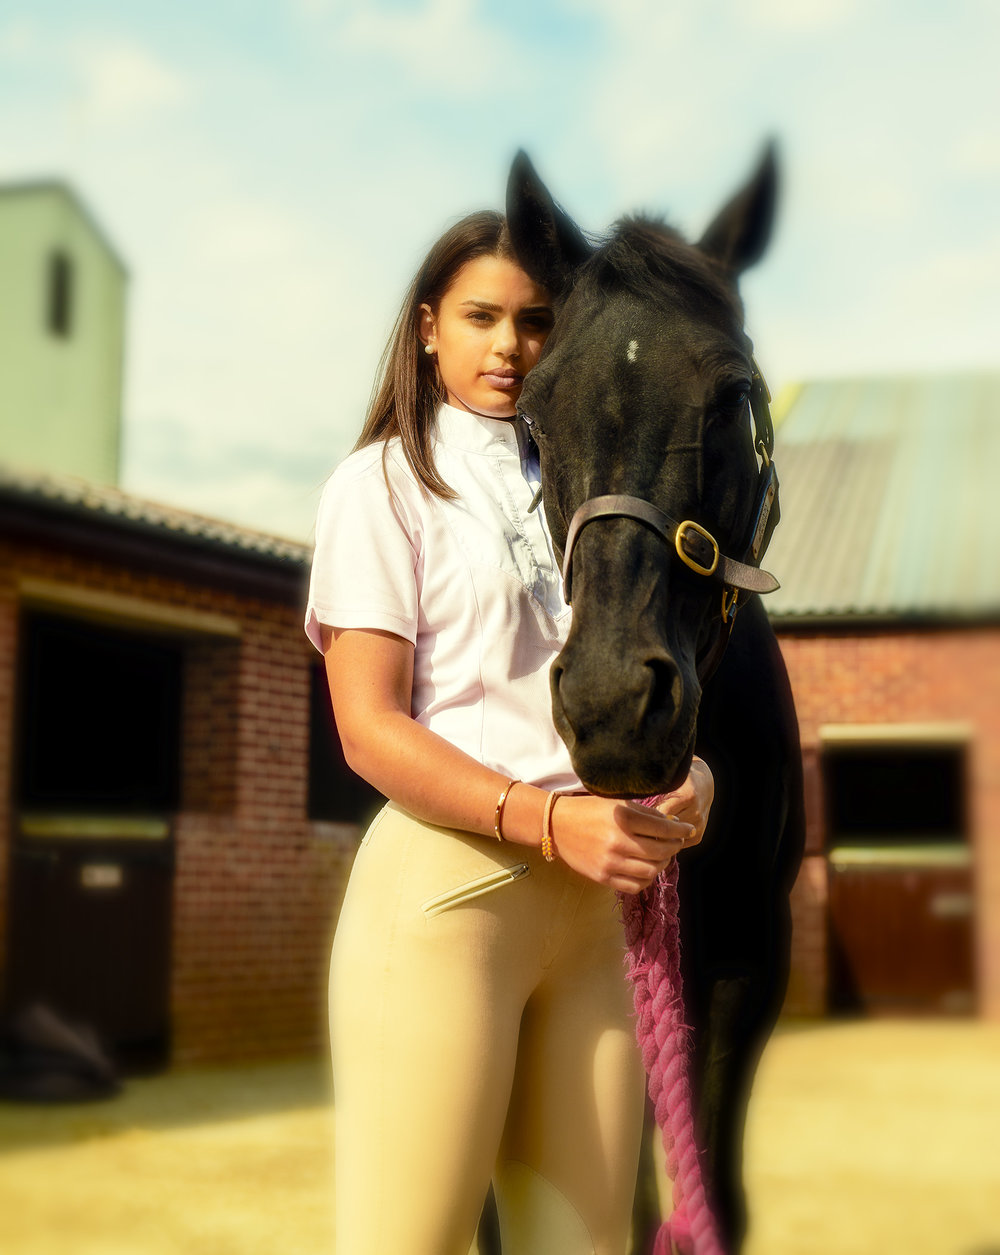 Studio Luxe, Suffolk - Horse & Equine Photography